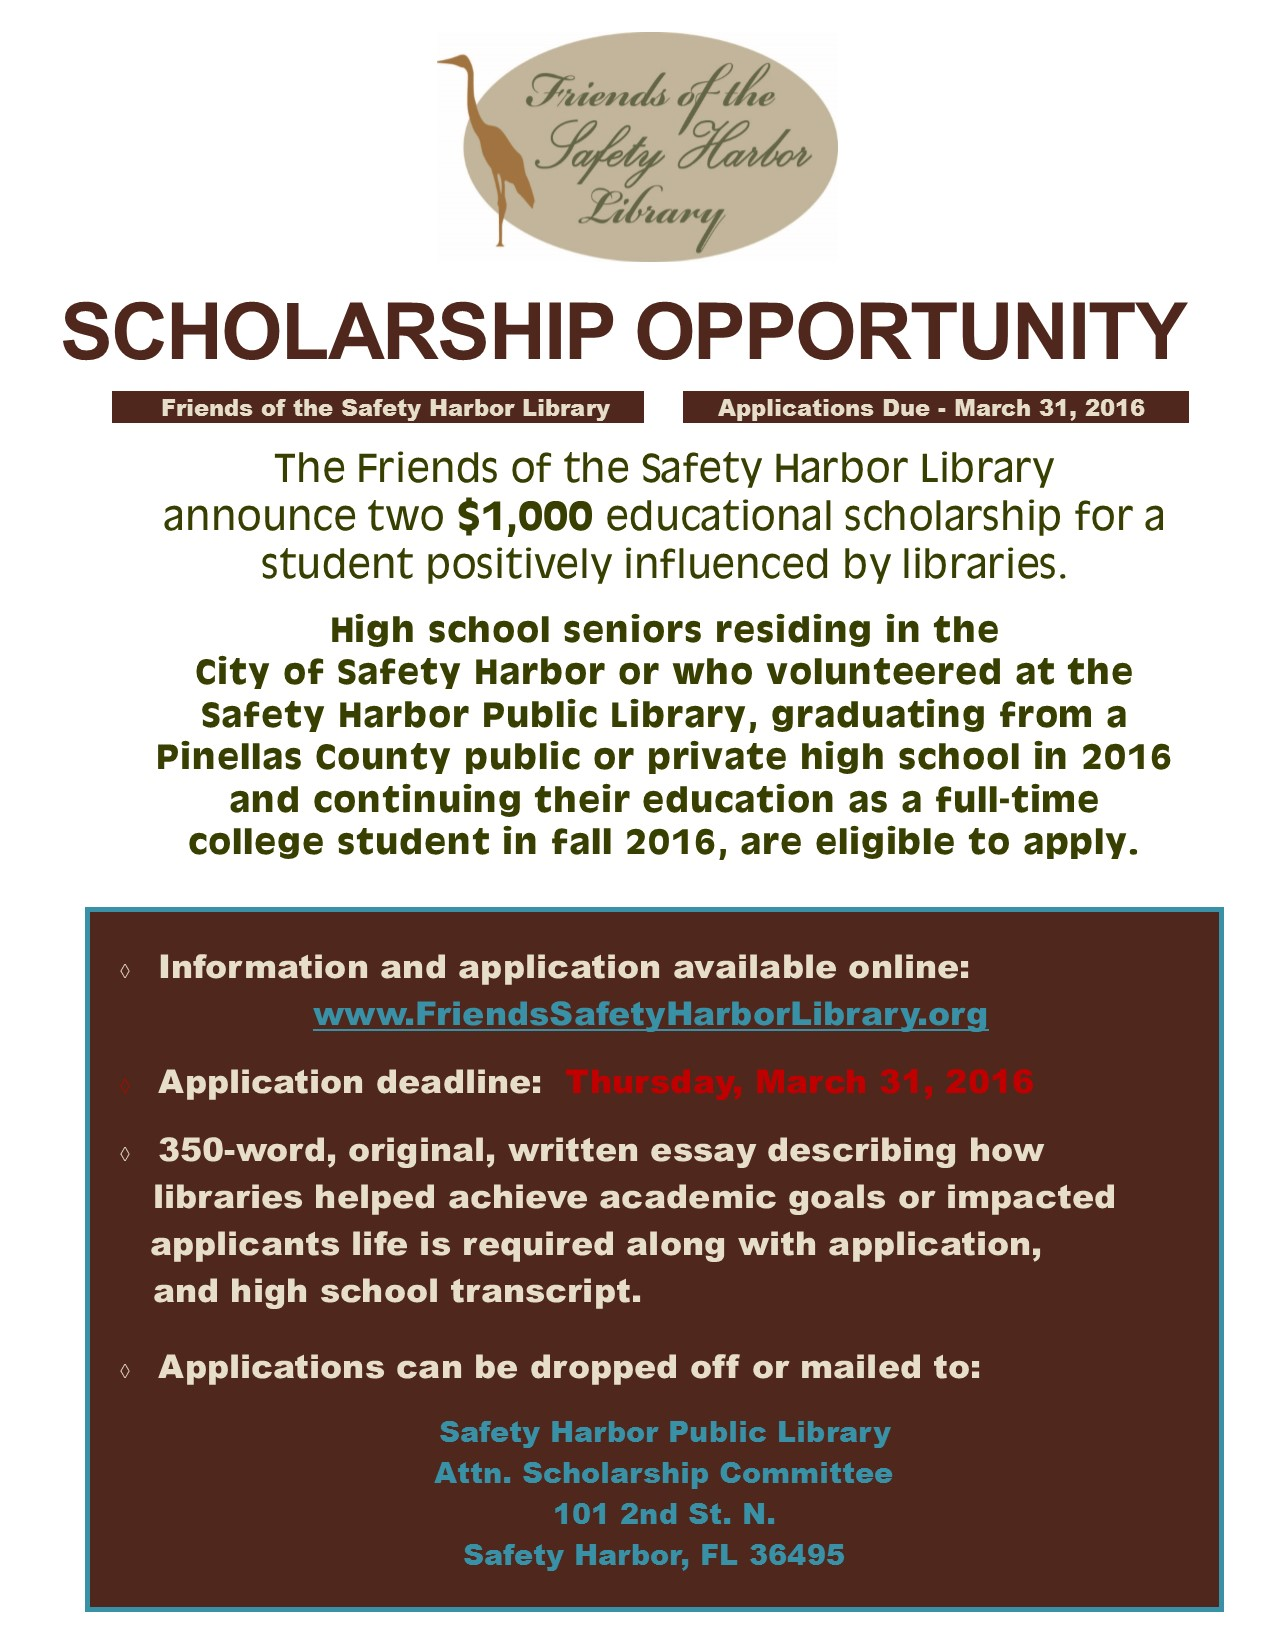 friends of the library annouce scholarships